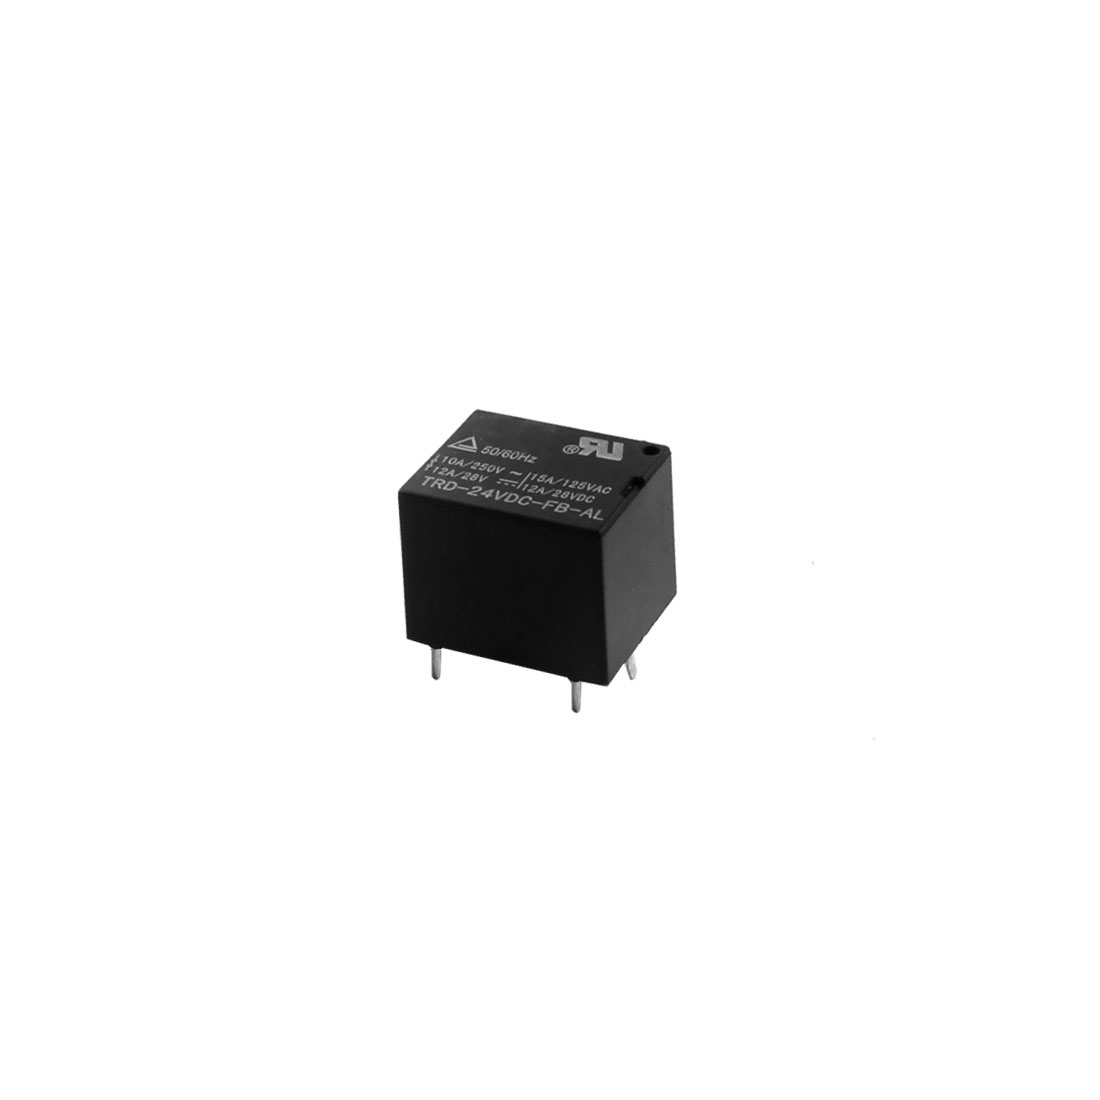 DC24V 4Pin SPST NO PCB Type General Purpose Coil Power Relay Black